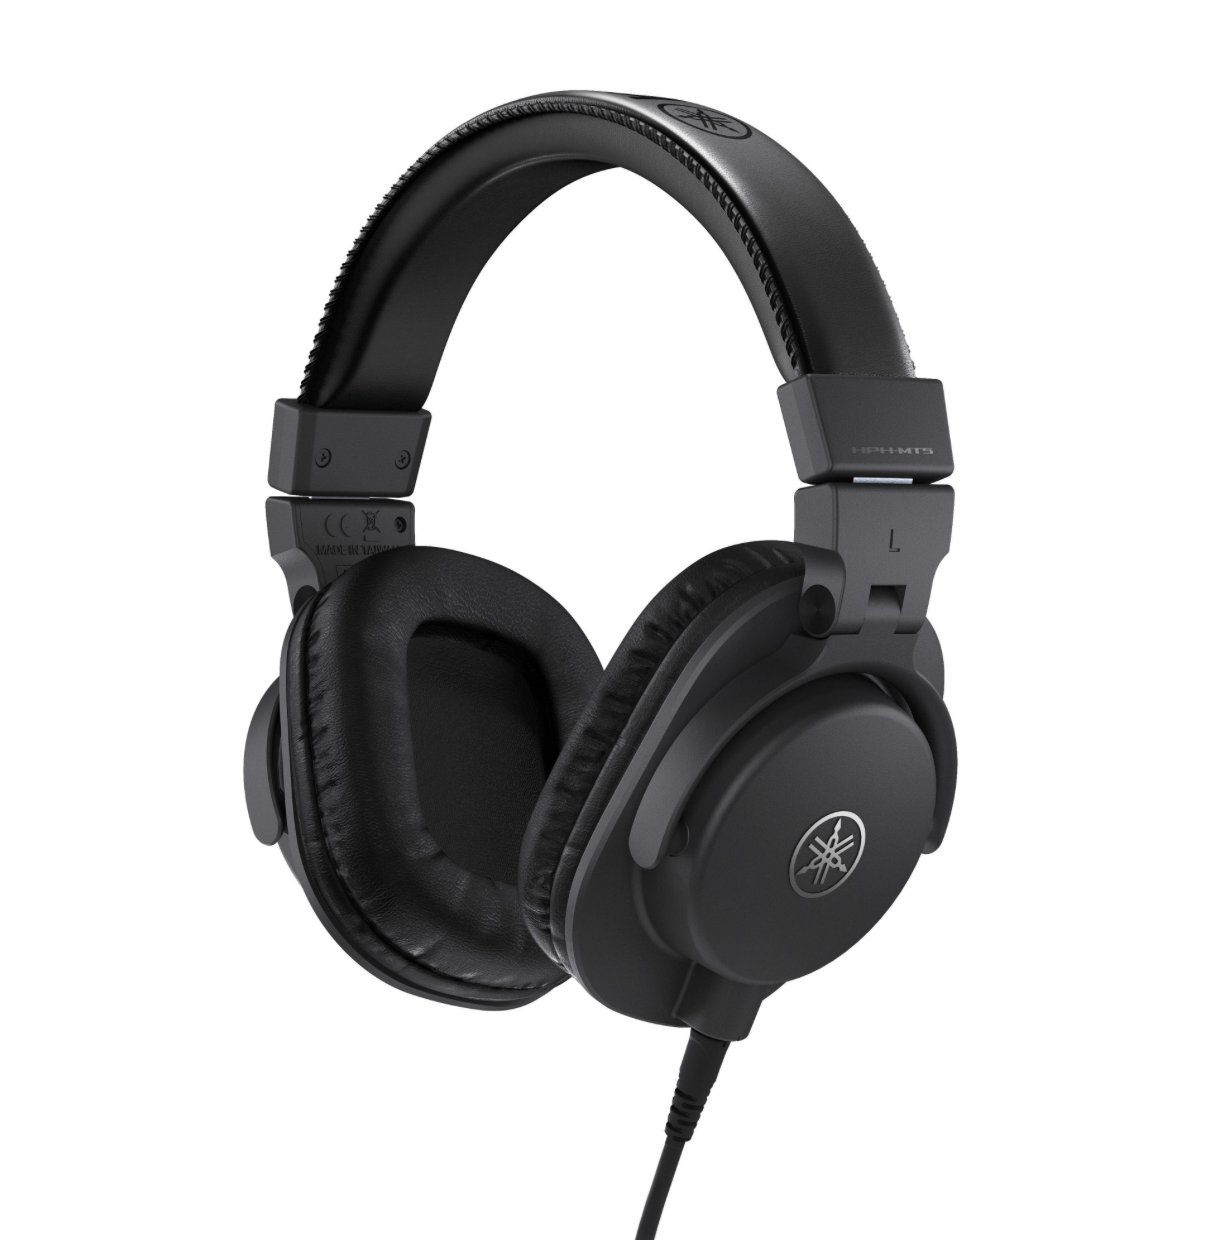 Yamaha HPH-MT5 - MT Series studio monitor headphones remain true to Yamaha's fundamental concept, delivering precision sound reproduction that meets the demanding requirements of today's professional studio and monitoring applications. With unmatched fidelity in a sturdy yet stylish design, and the durability to hold up to the rigors of the road, Yamaha's MT Series headphones offer a level of comfort you'll be thankful for after long hours in a critical listening environment. High-grade monitor headphones that deliver a balanced sound faithful to the source. Perfect for in the studio, music production at home, or for personal listening. Great portability thanks to the folding arm and 250g light weight hardware designing. These headphones are a good contender for those buying on a budget.Price: £85Cup Type: ClosedFrequency response: 20Hz - 20kHzImpedance: 51 Ω (at 1kHz)Cable: 3m Straight